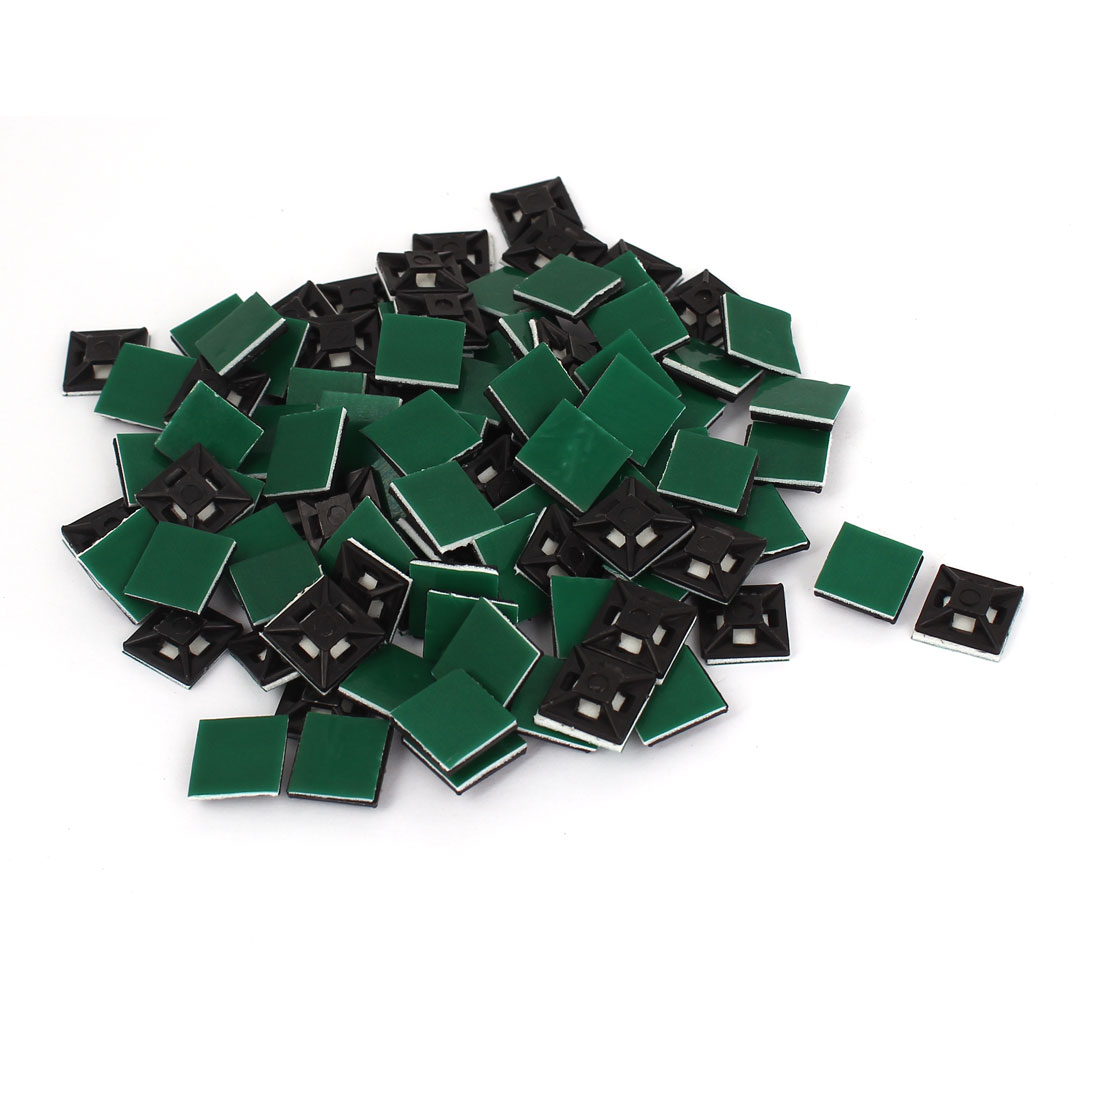 100pcs 13mmx13mm Square Self-Adhesive Cable Tie Mount Bases for 3mm Zip Tie